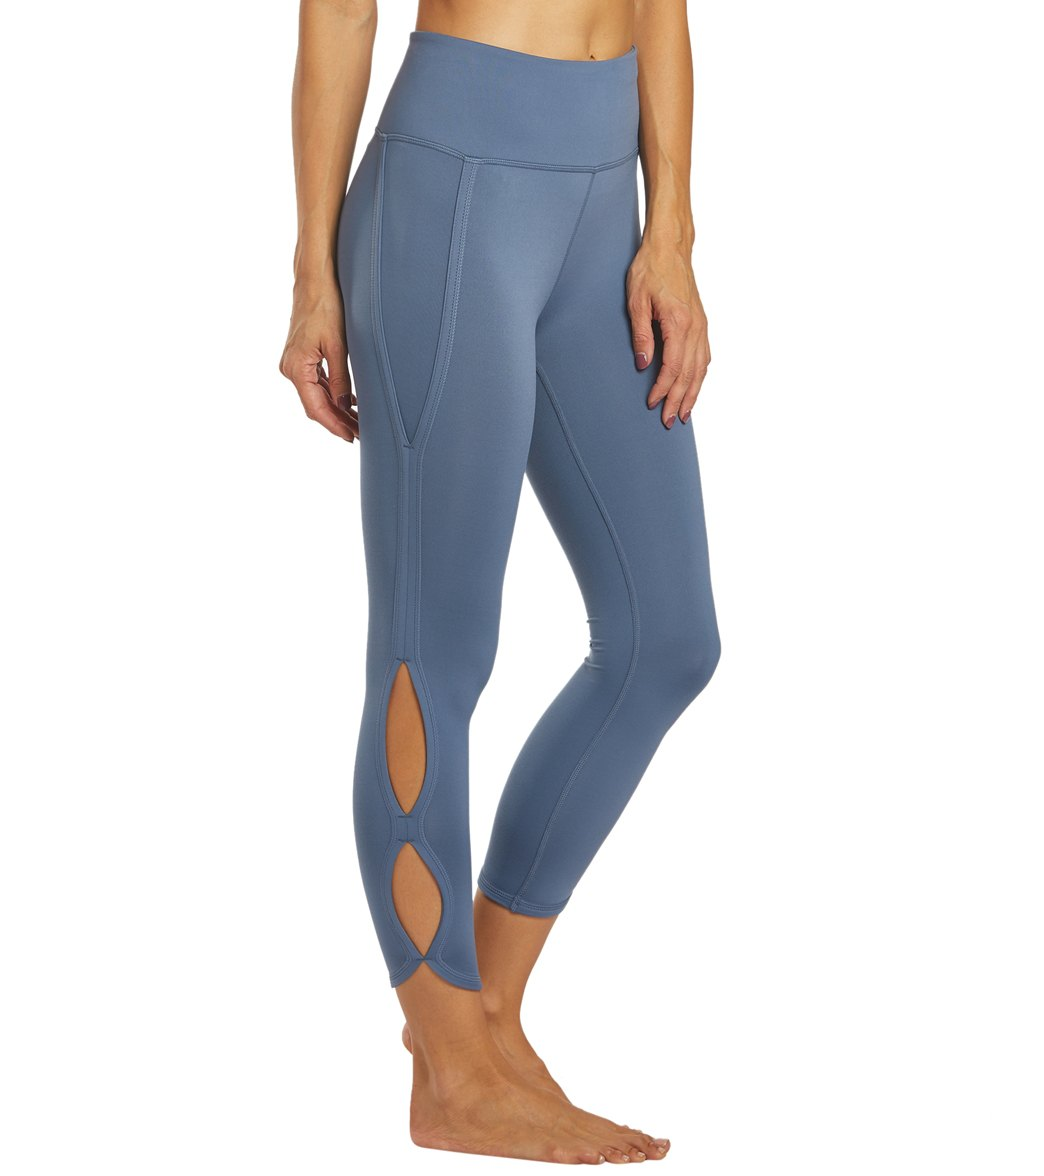 Free People Movement High Rise Infinity Yoga Leggings - Slate Spandex